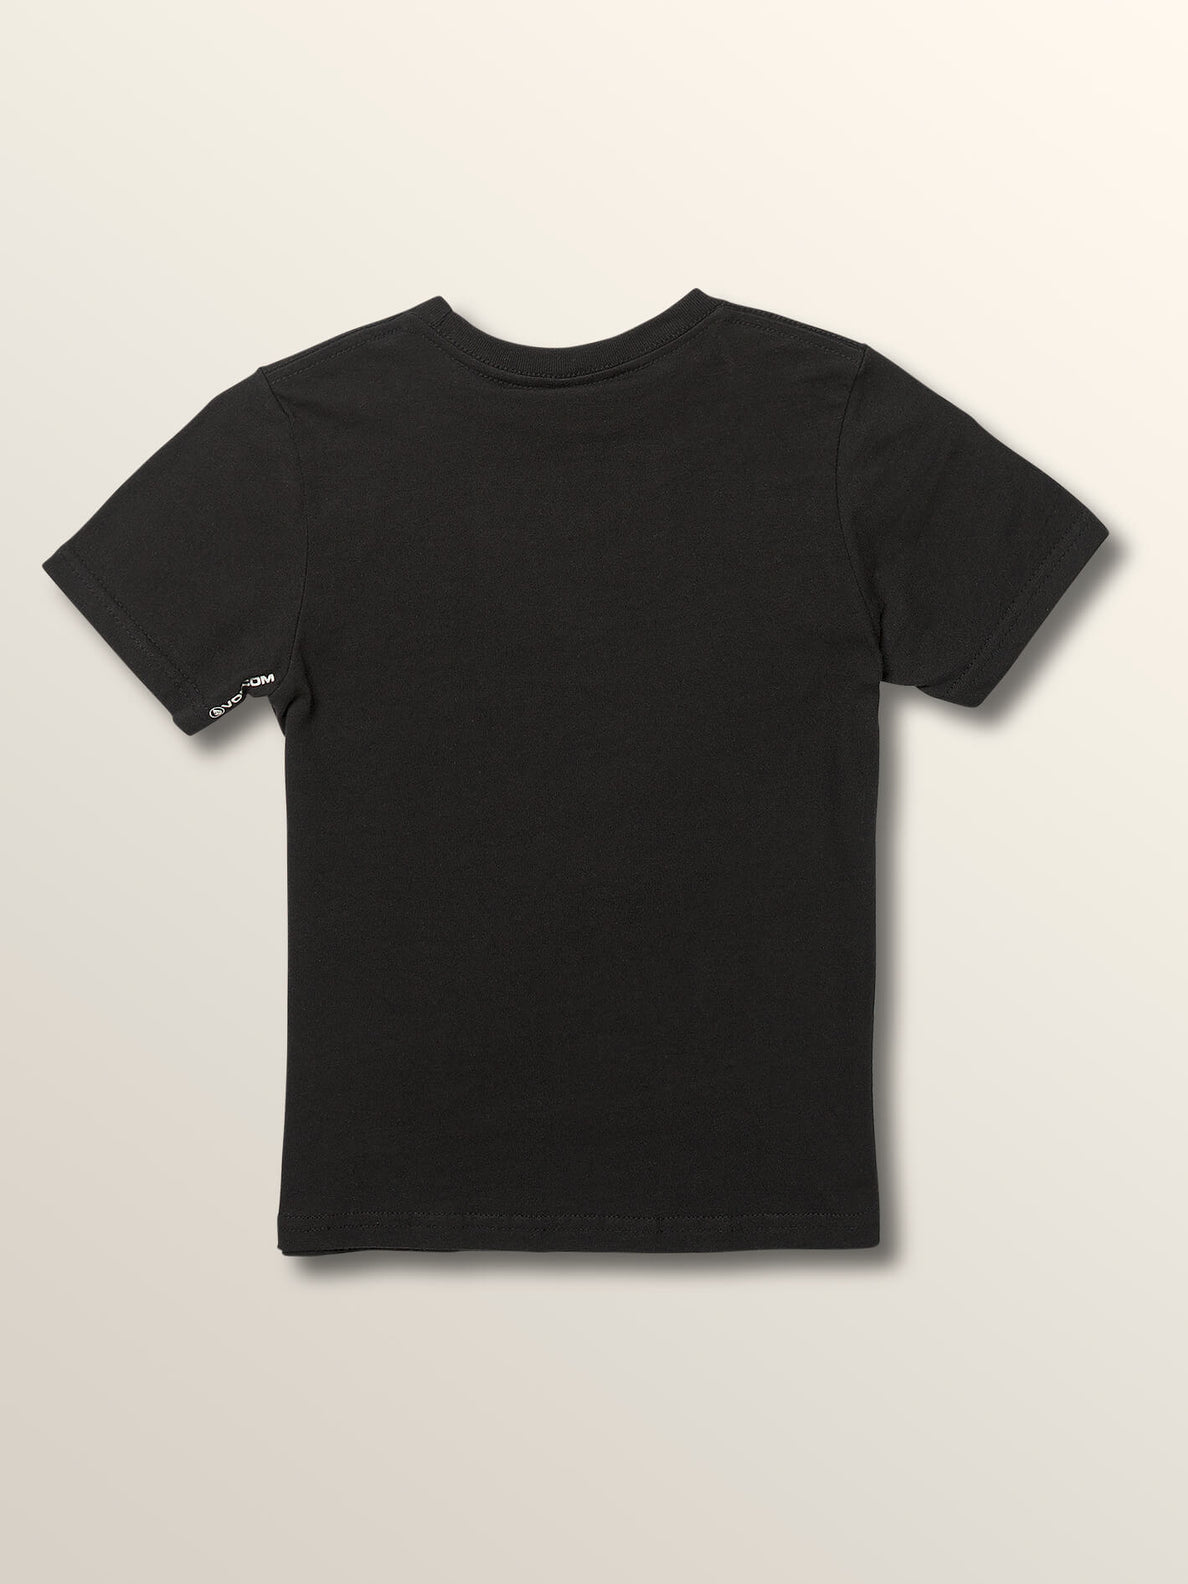 Little Boys Sound Waves Short Sleeve Tee In Black, Back View